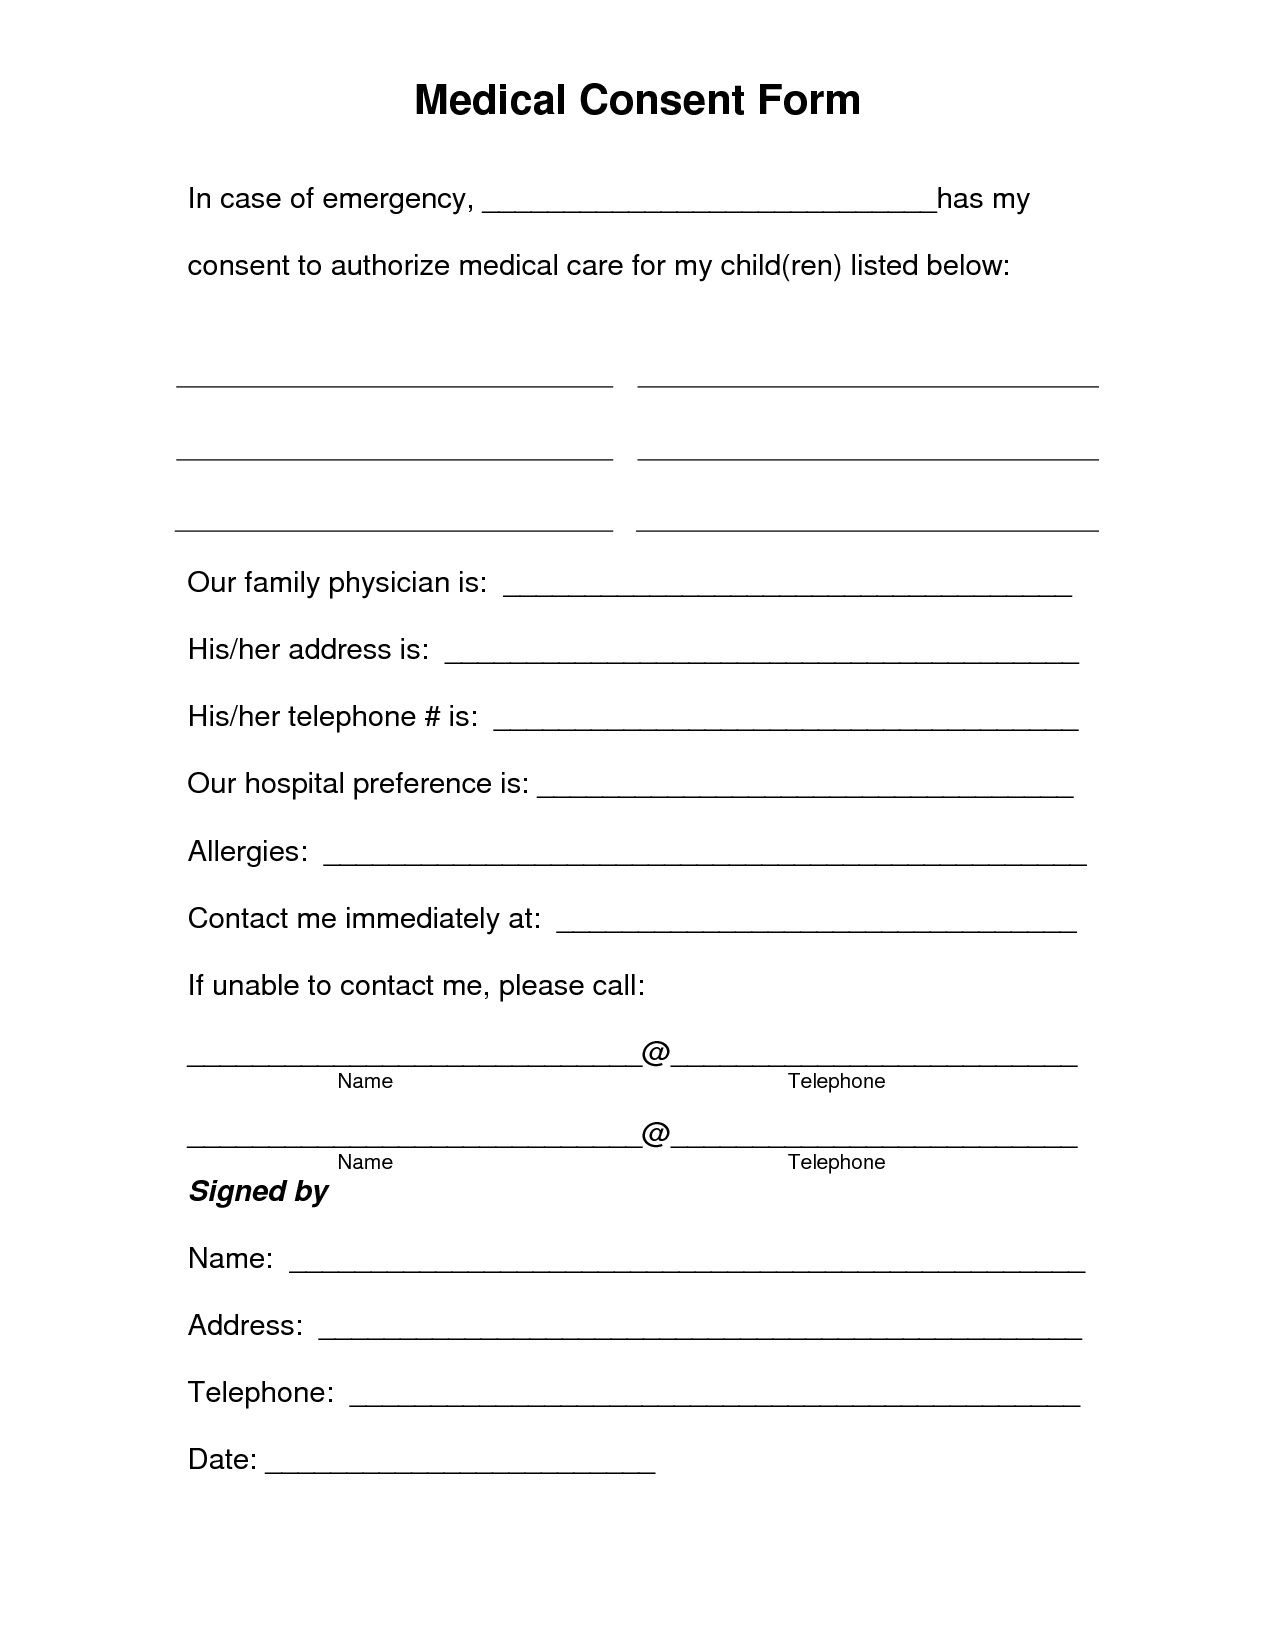 003 Singular Medical Release Form Template Idea  Free Consent Uk For MinorFull